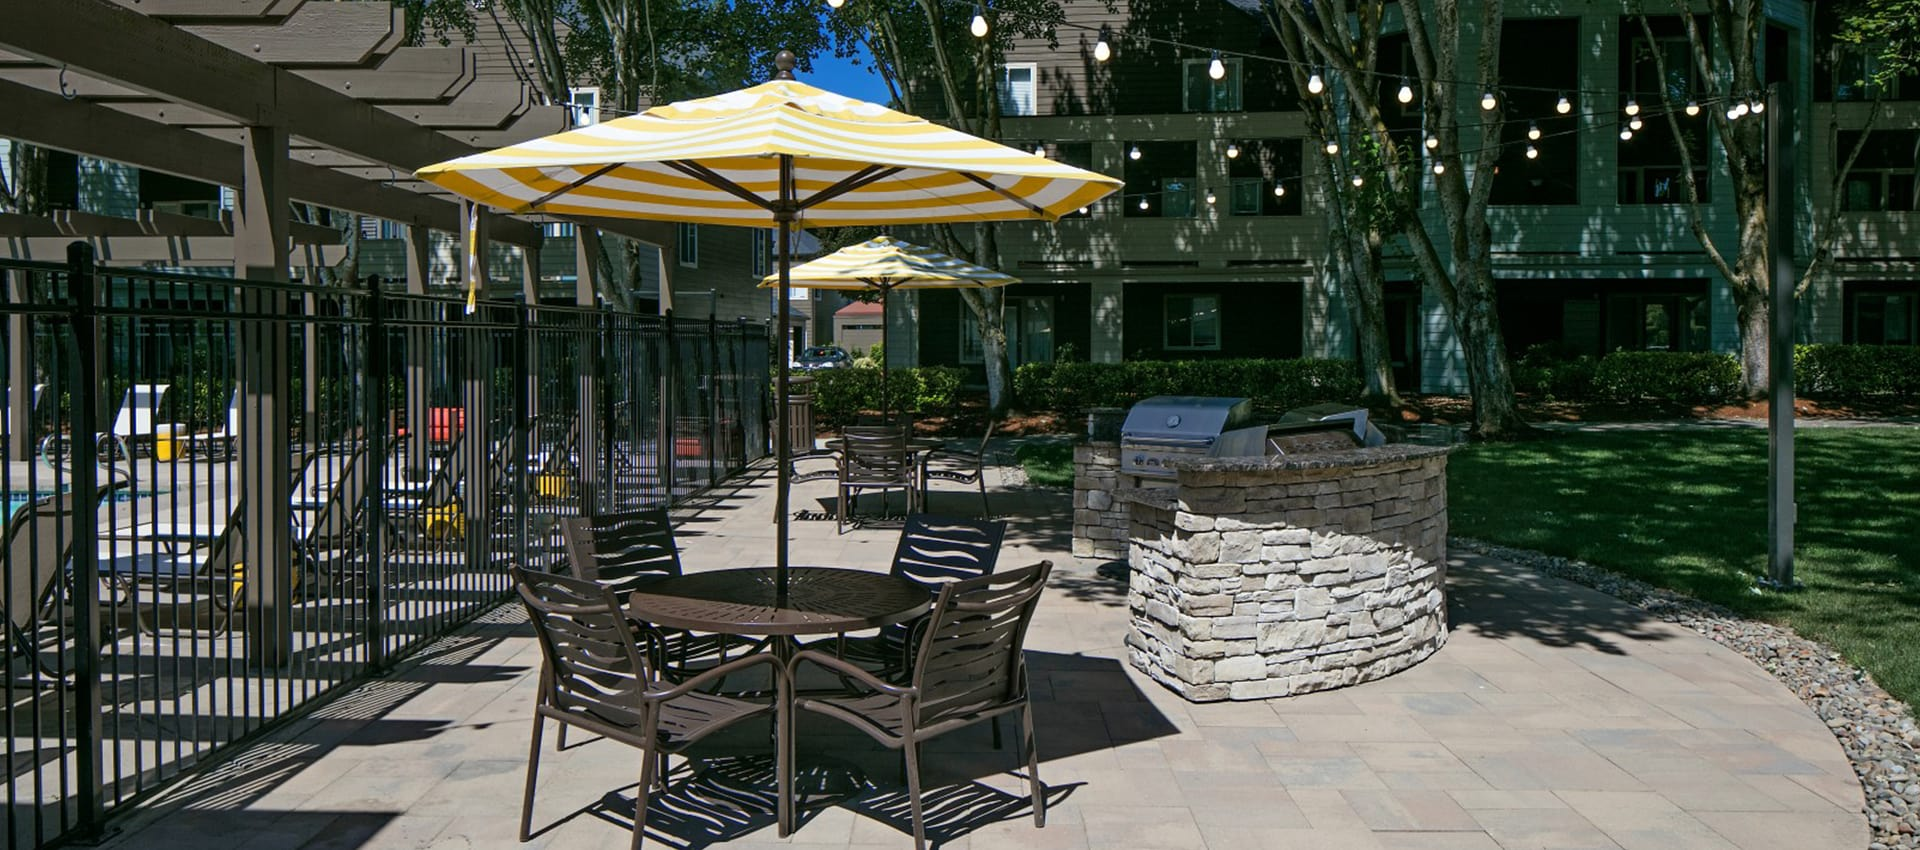 BBQ area at Waterhouse Place in Beaverton, OR